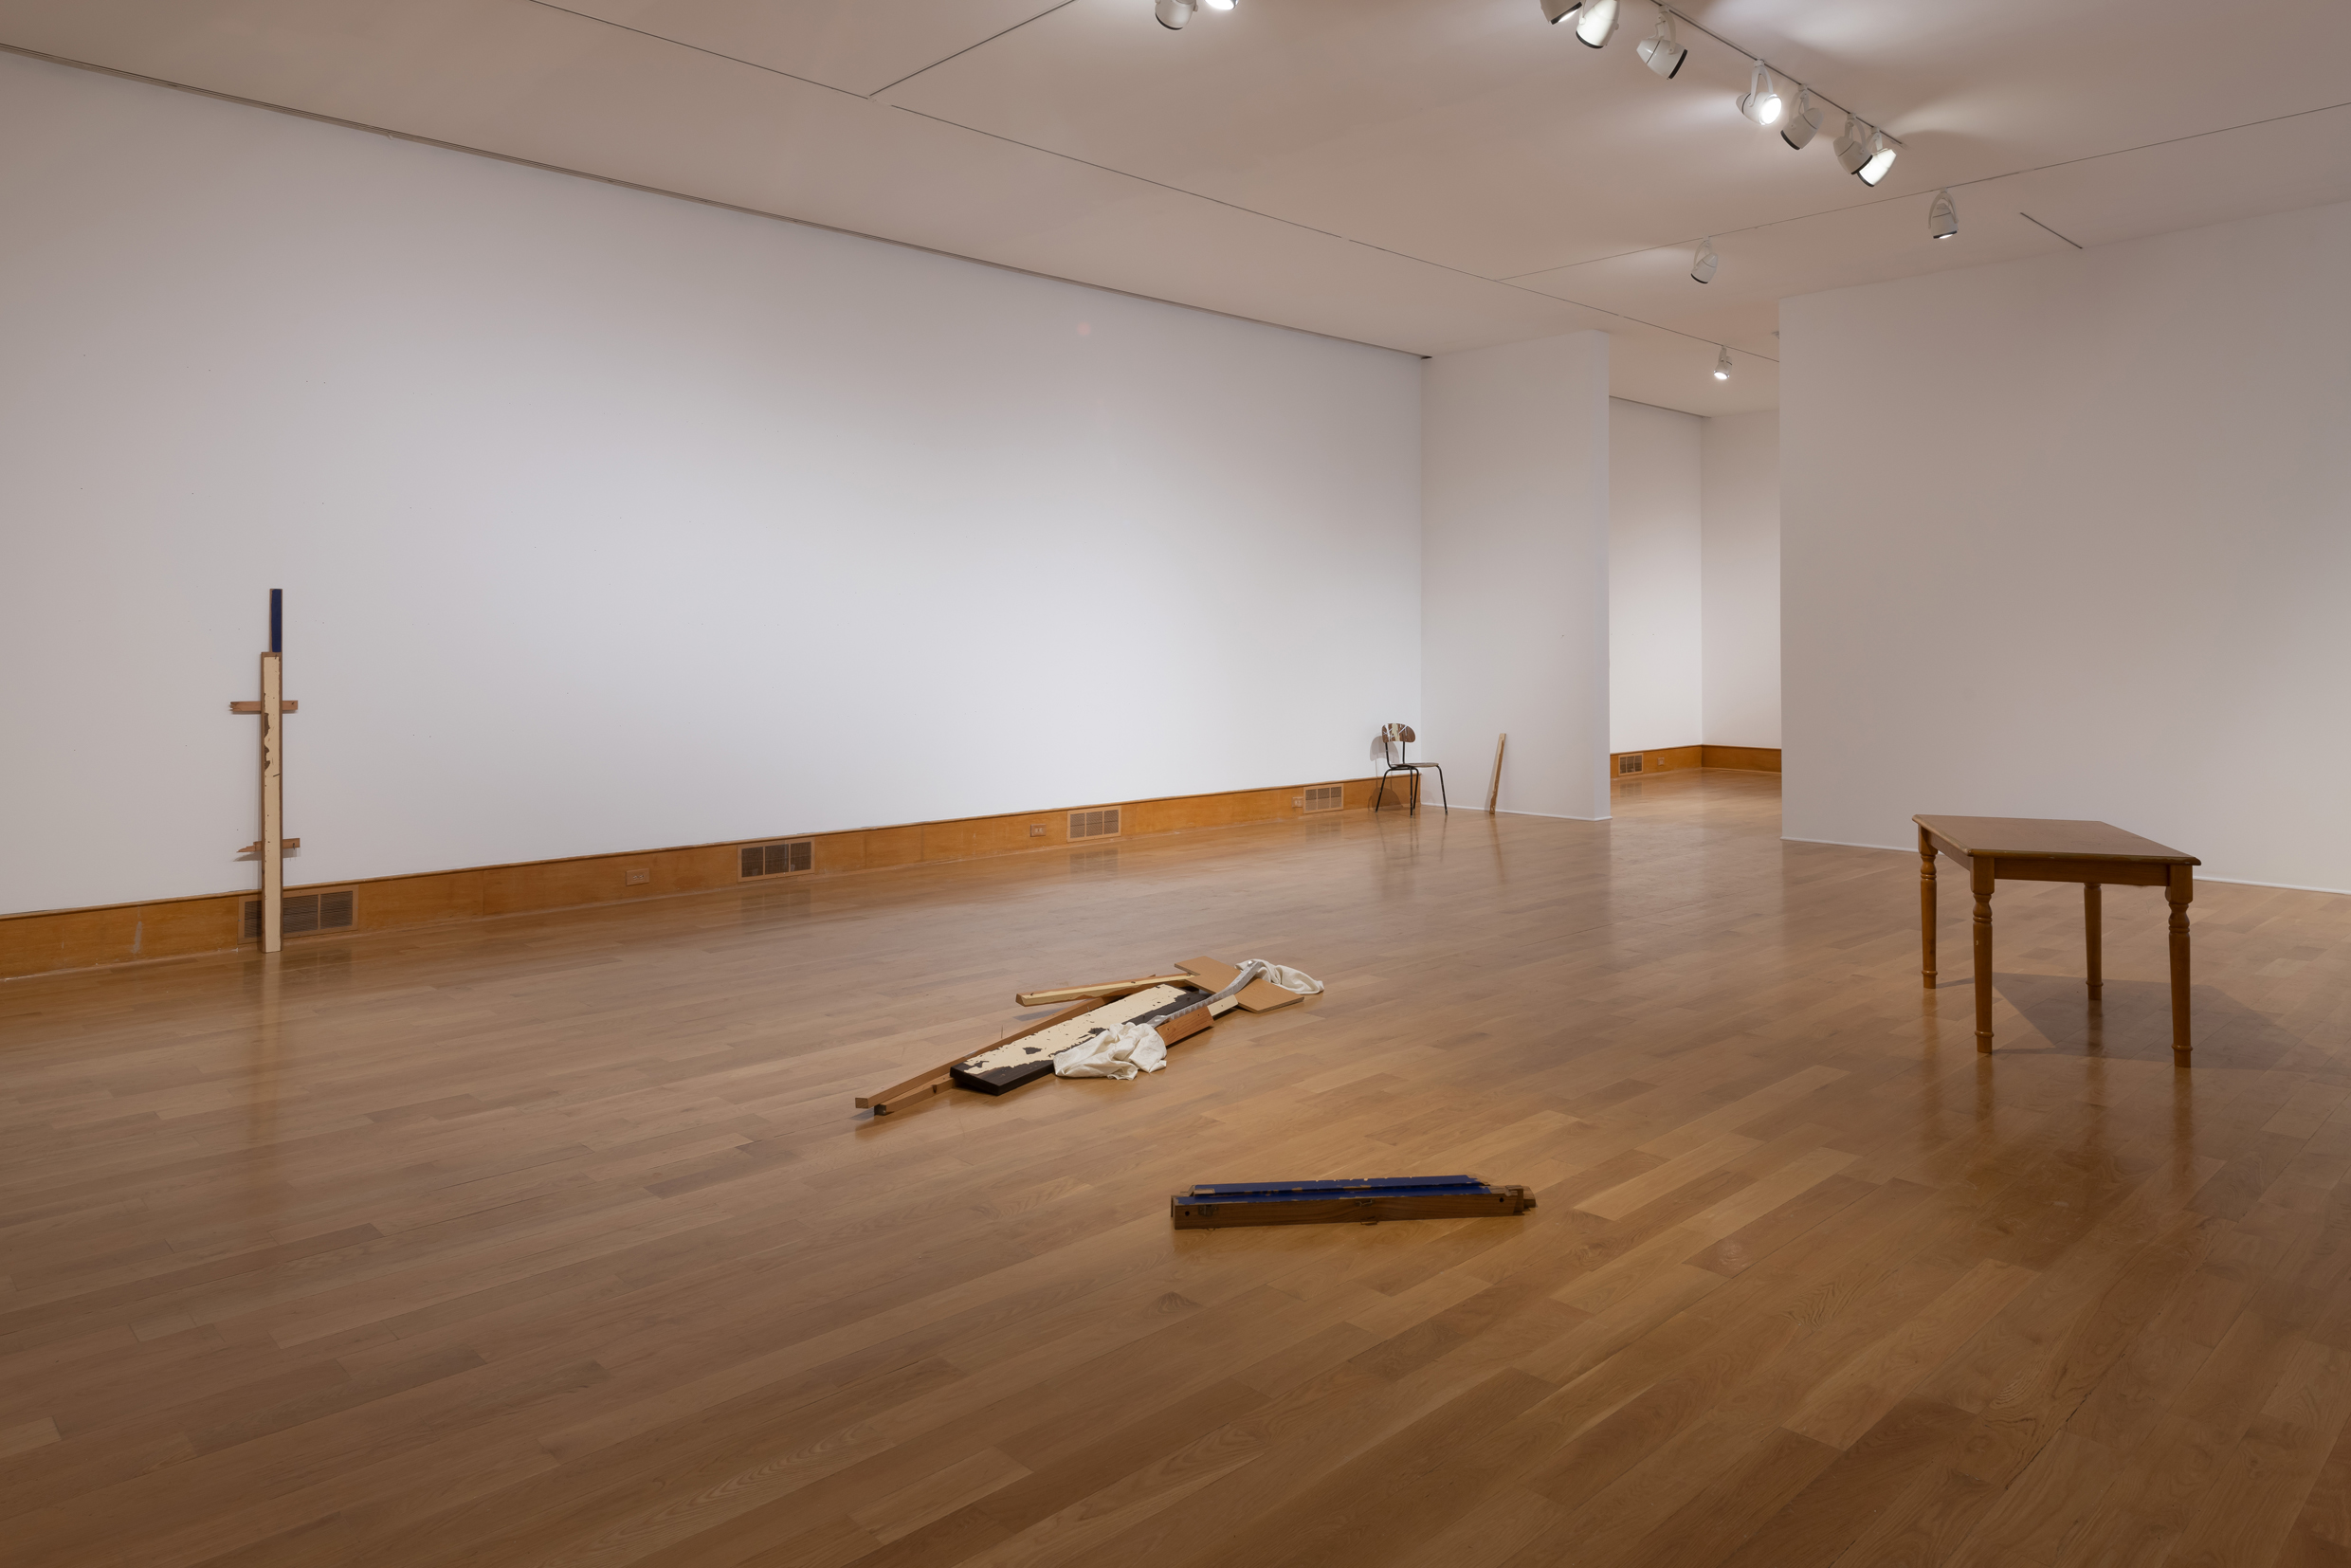 Susan Collis at Des Moines Art Center